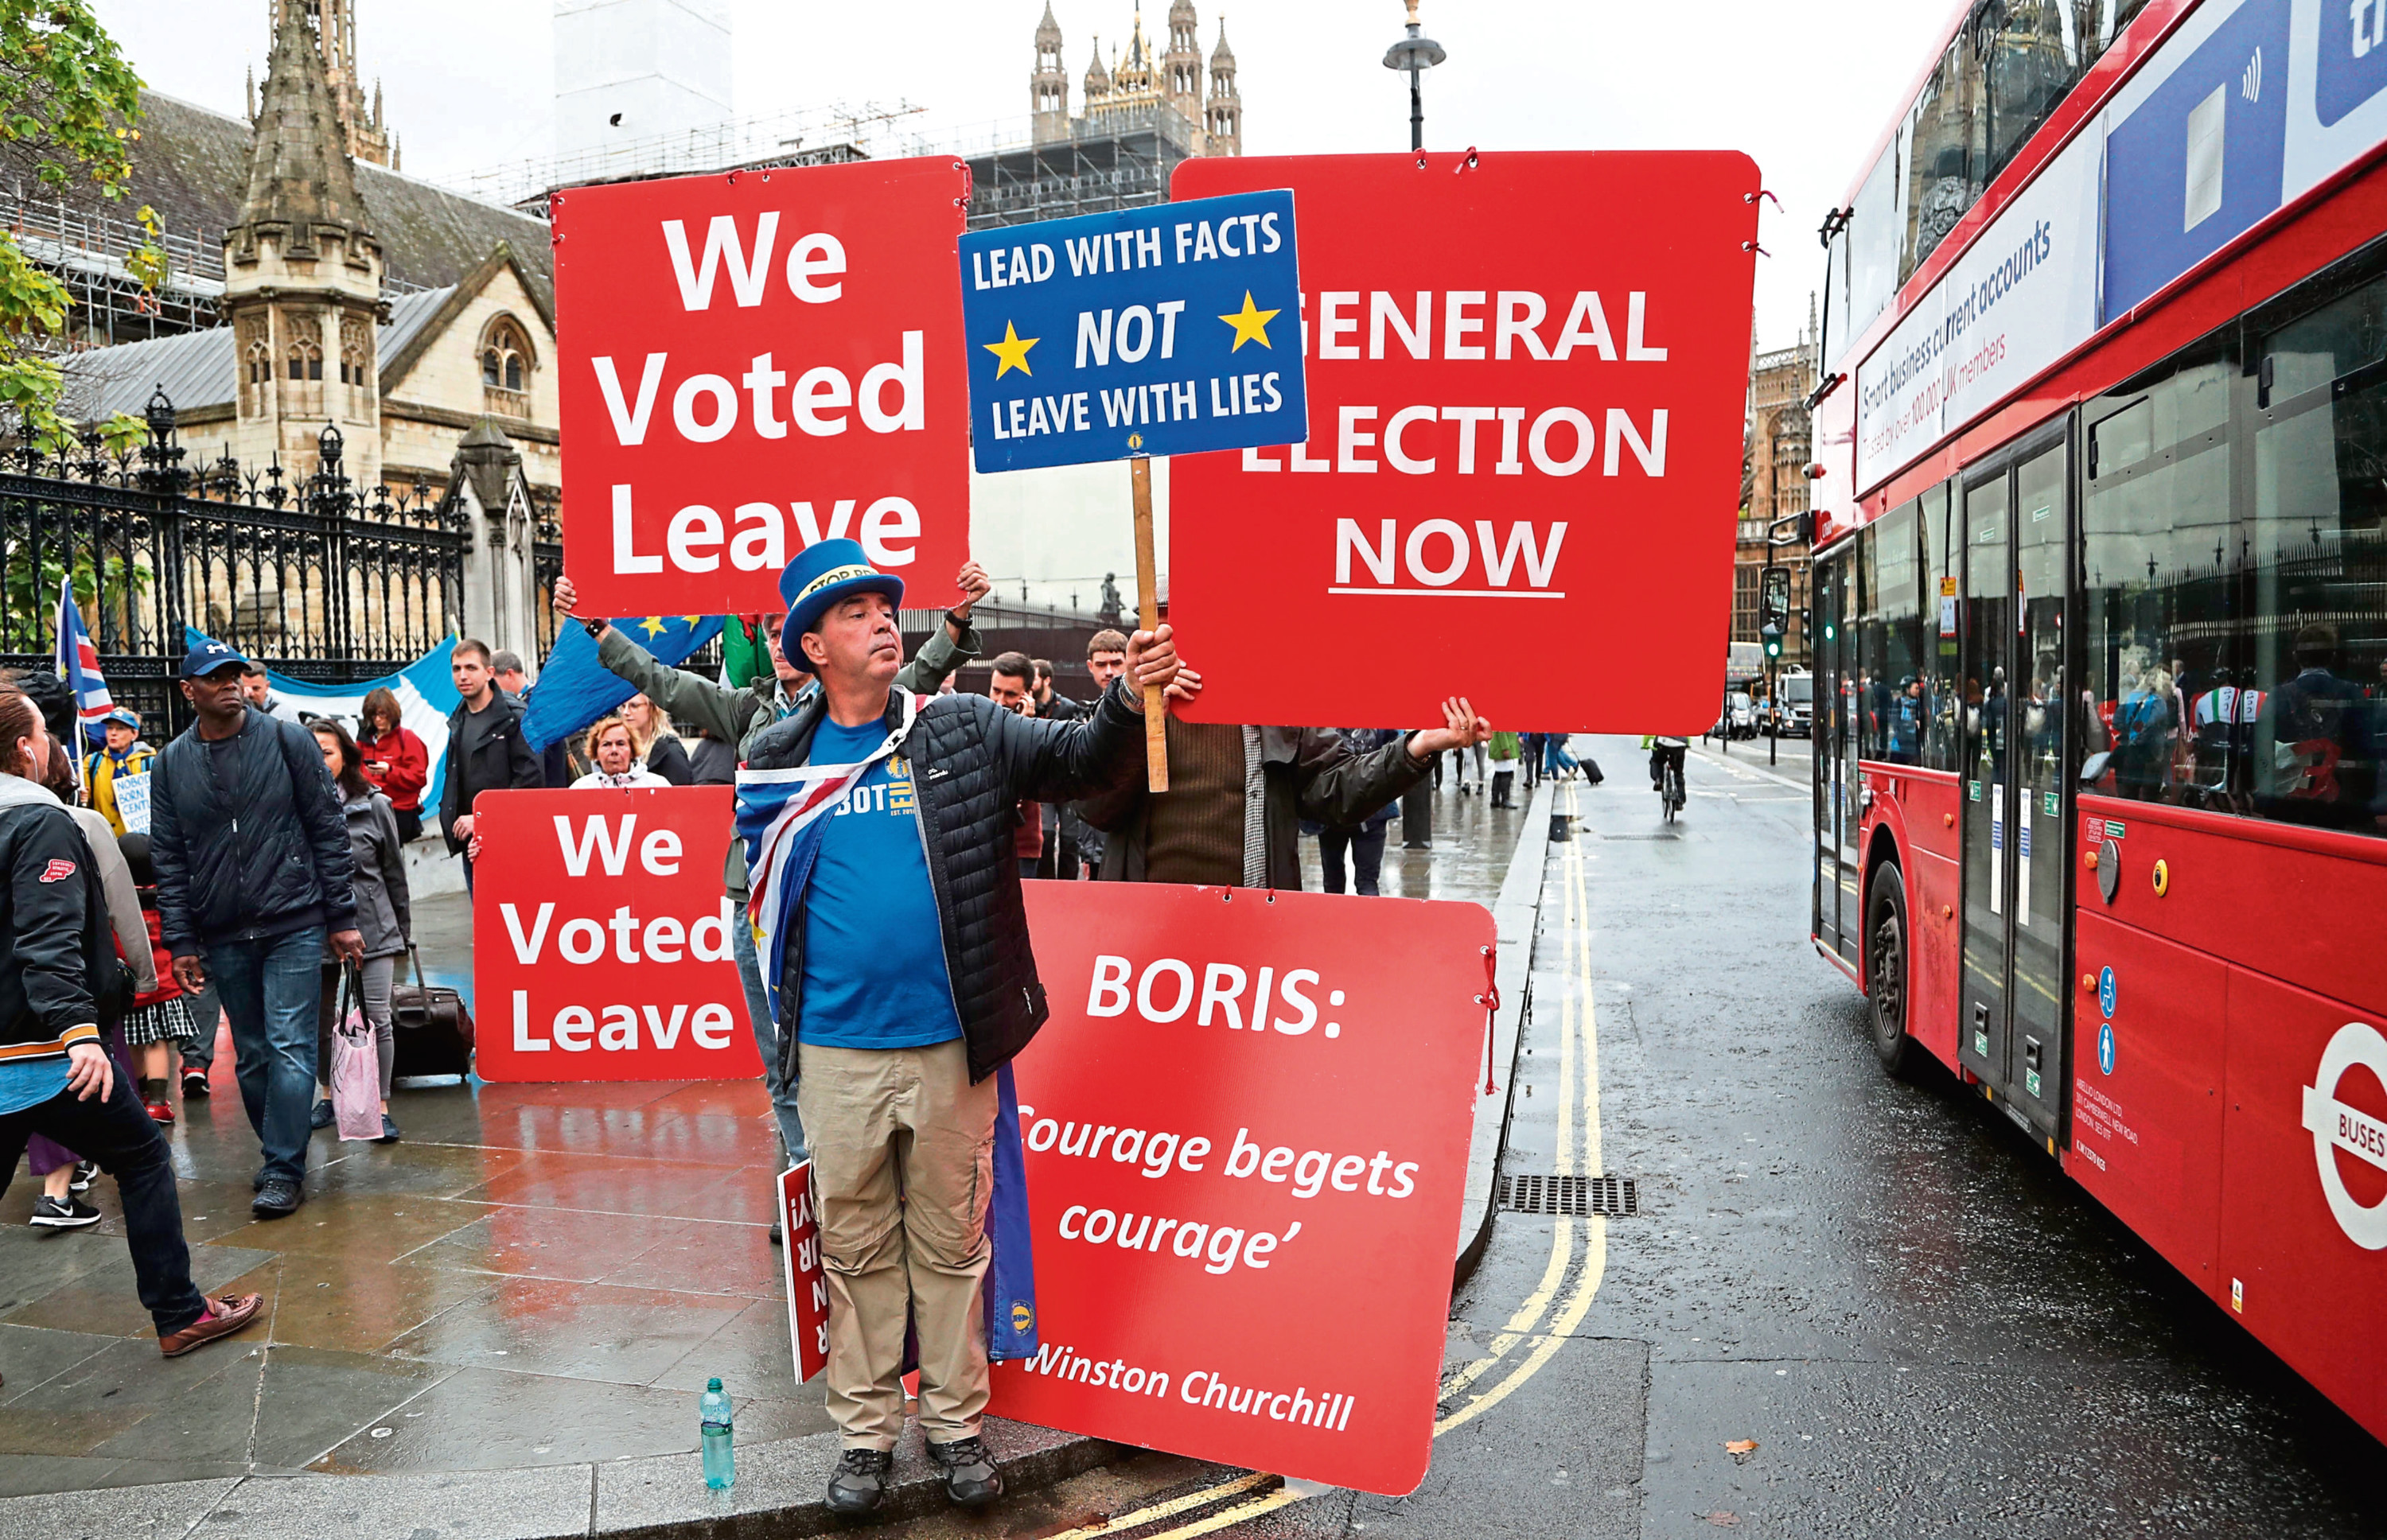 Pro and anti-Brexit supporters hold signs and demonstrate outside Parliament in London.